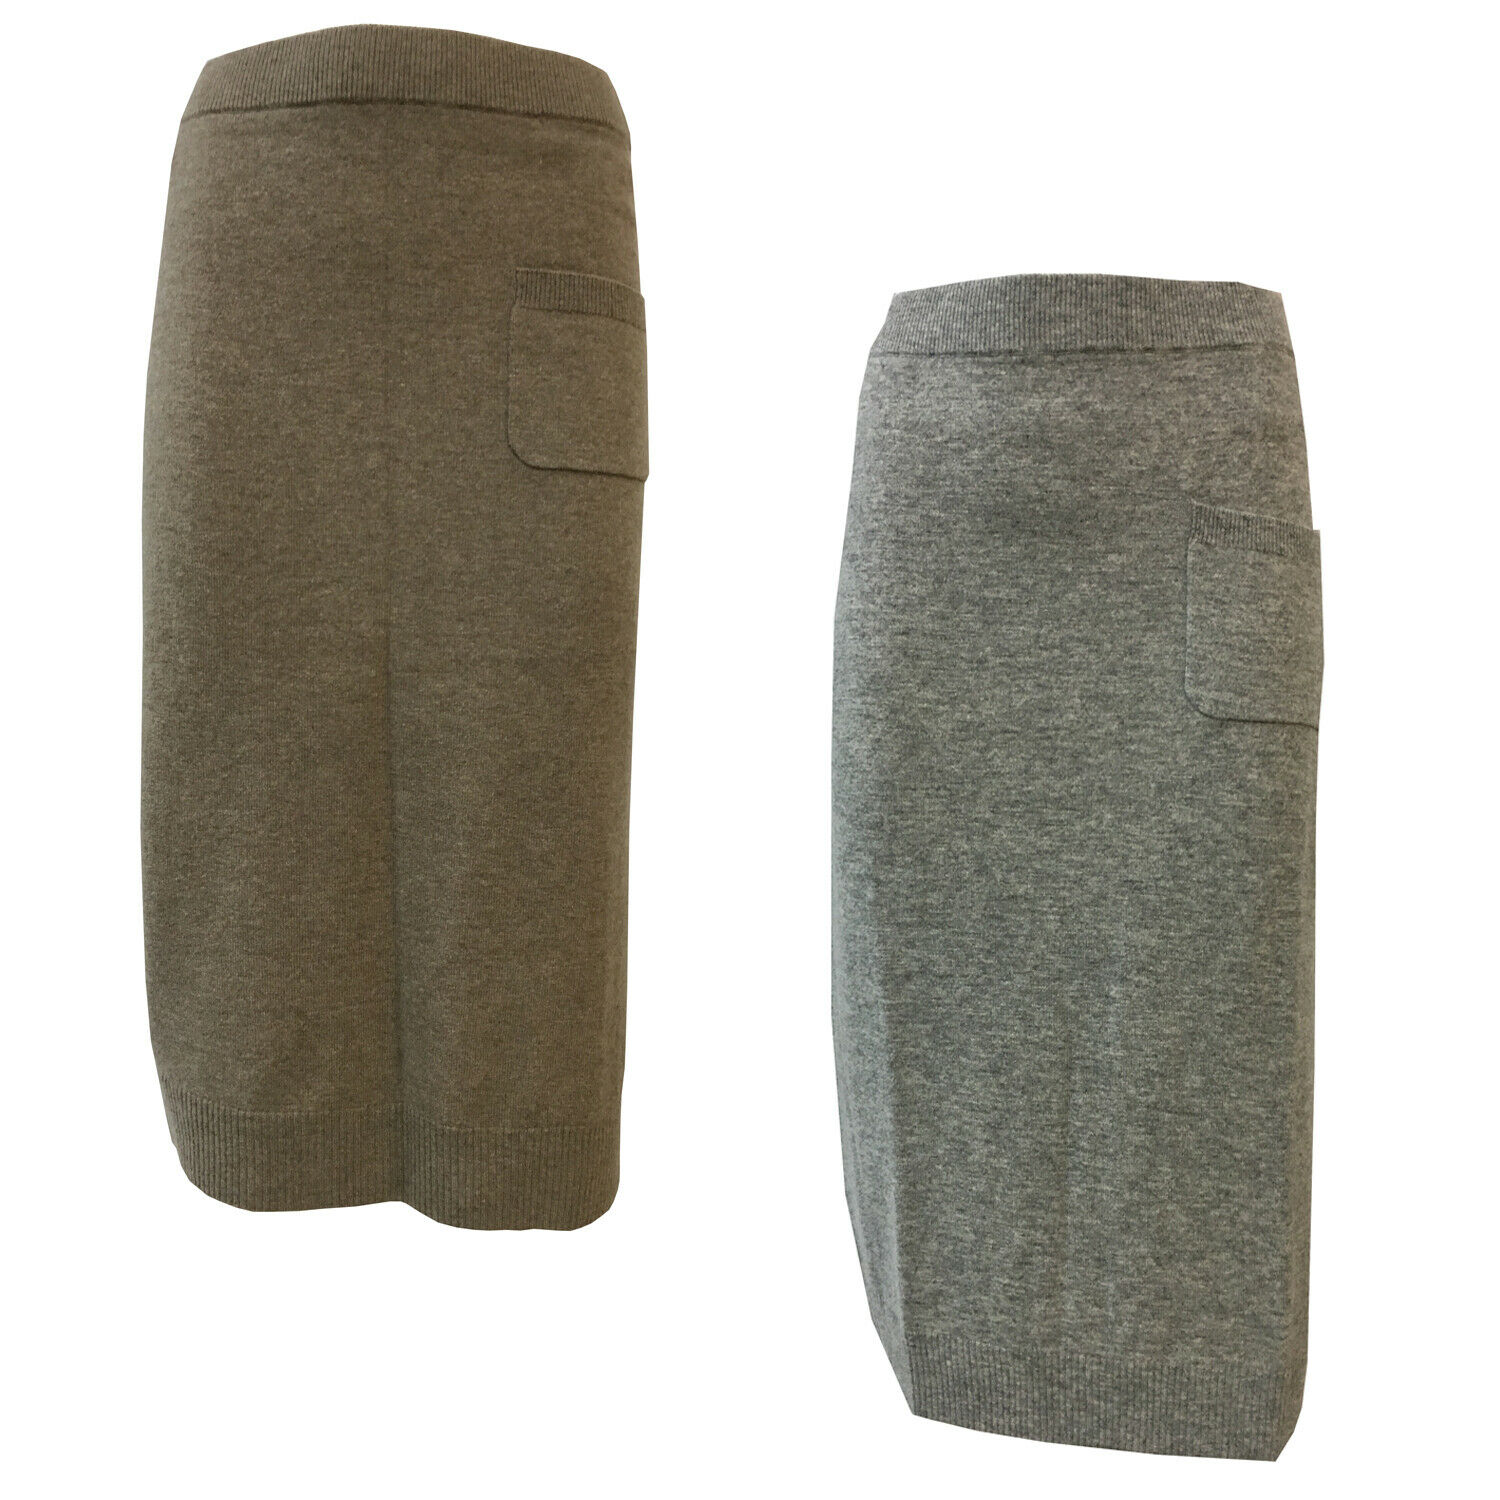 CA' VAGAN skirt woman wool with vent side mod. 13602 MADE IN MONGOLIA